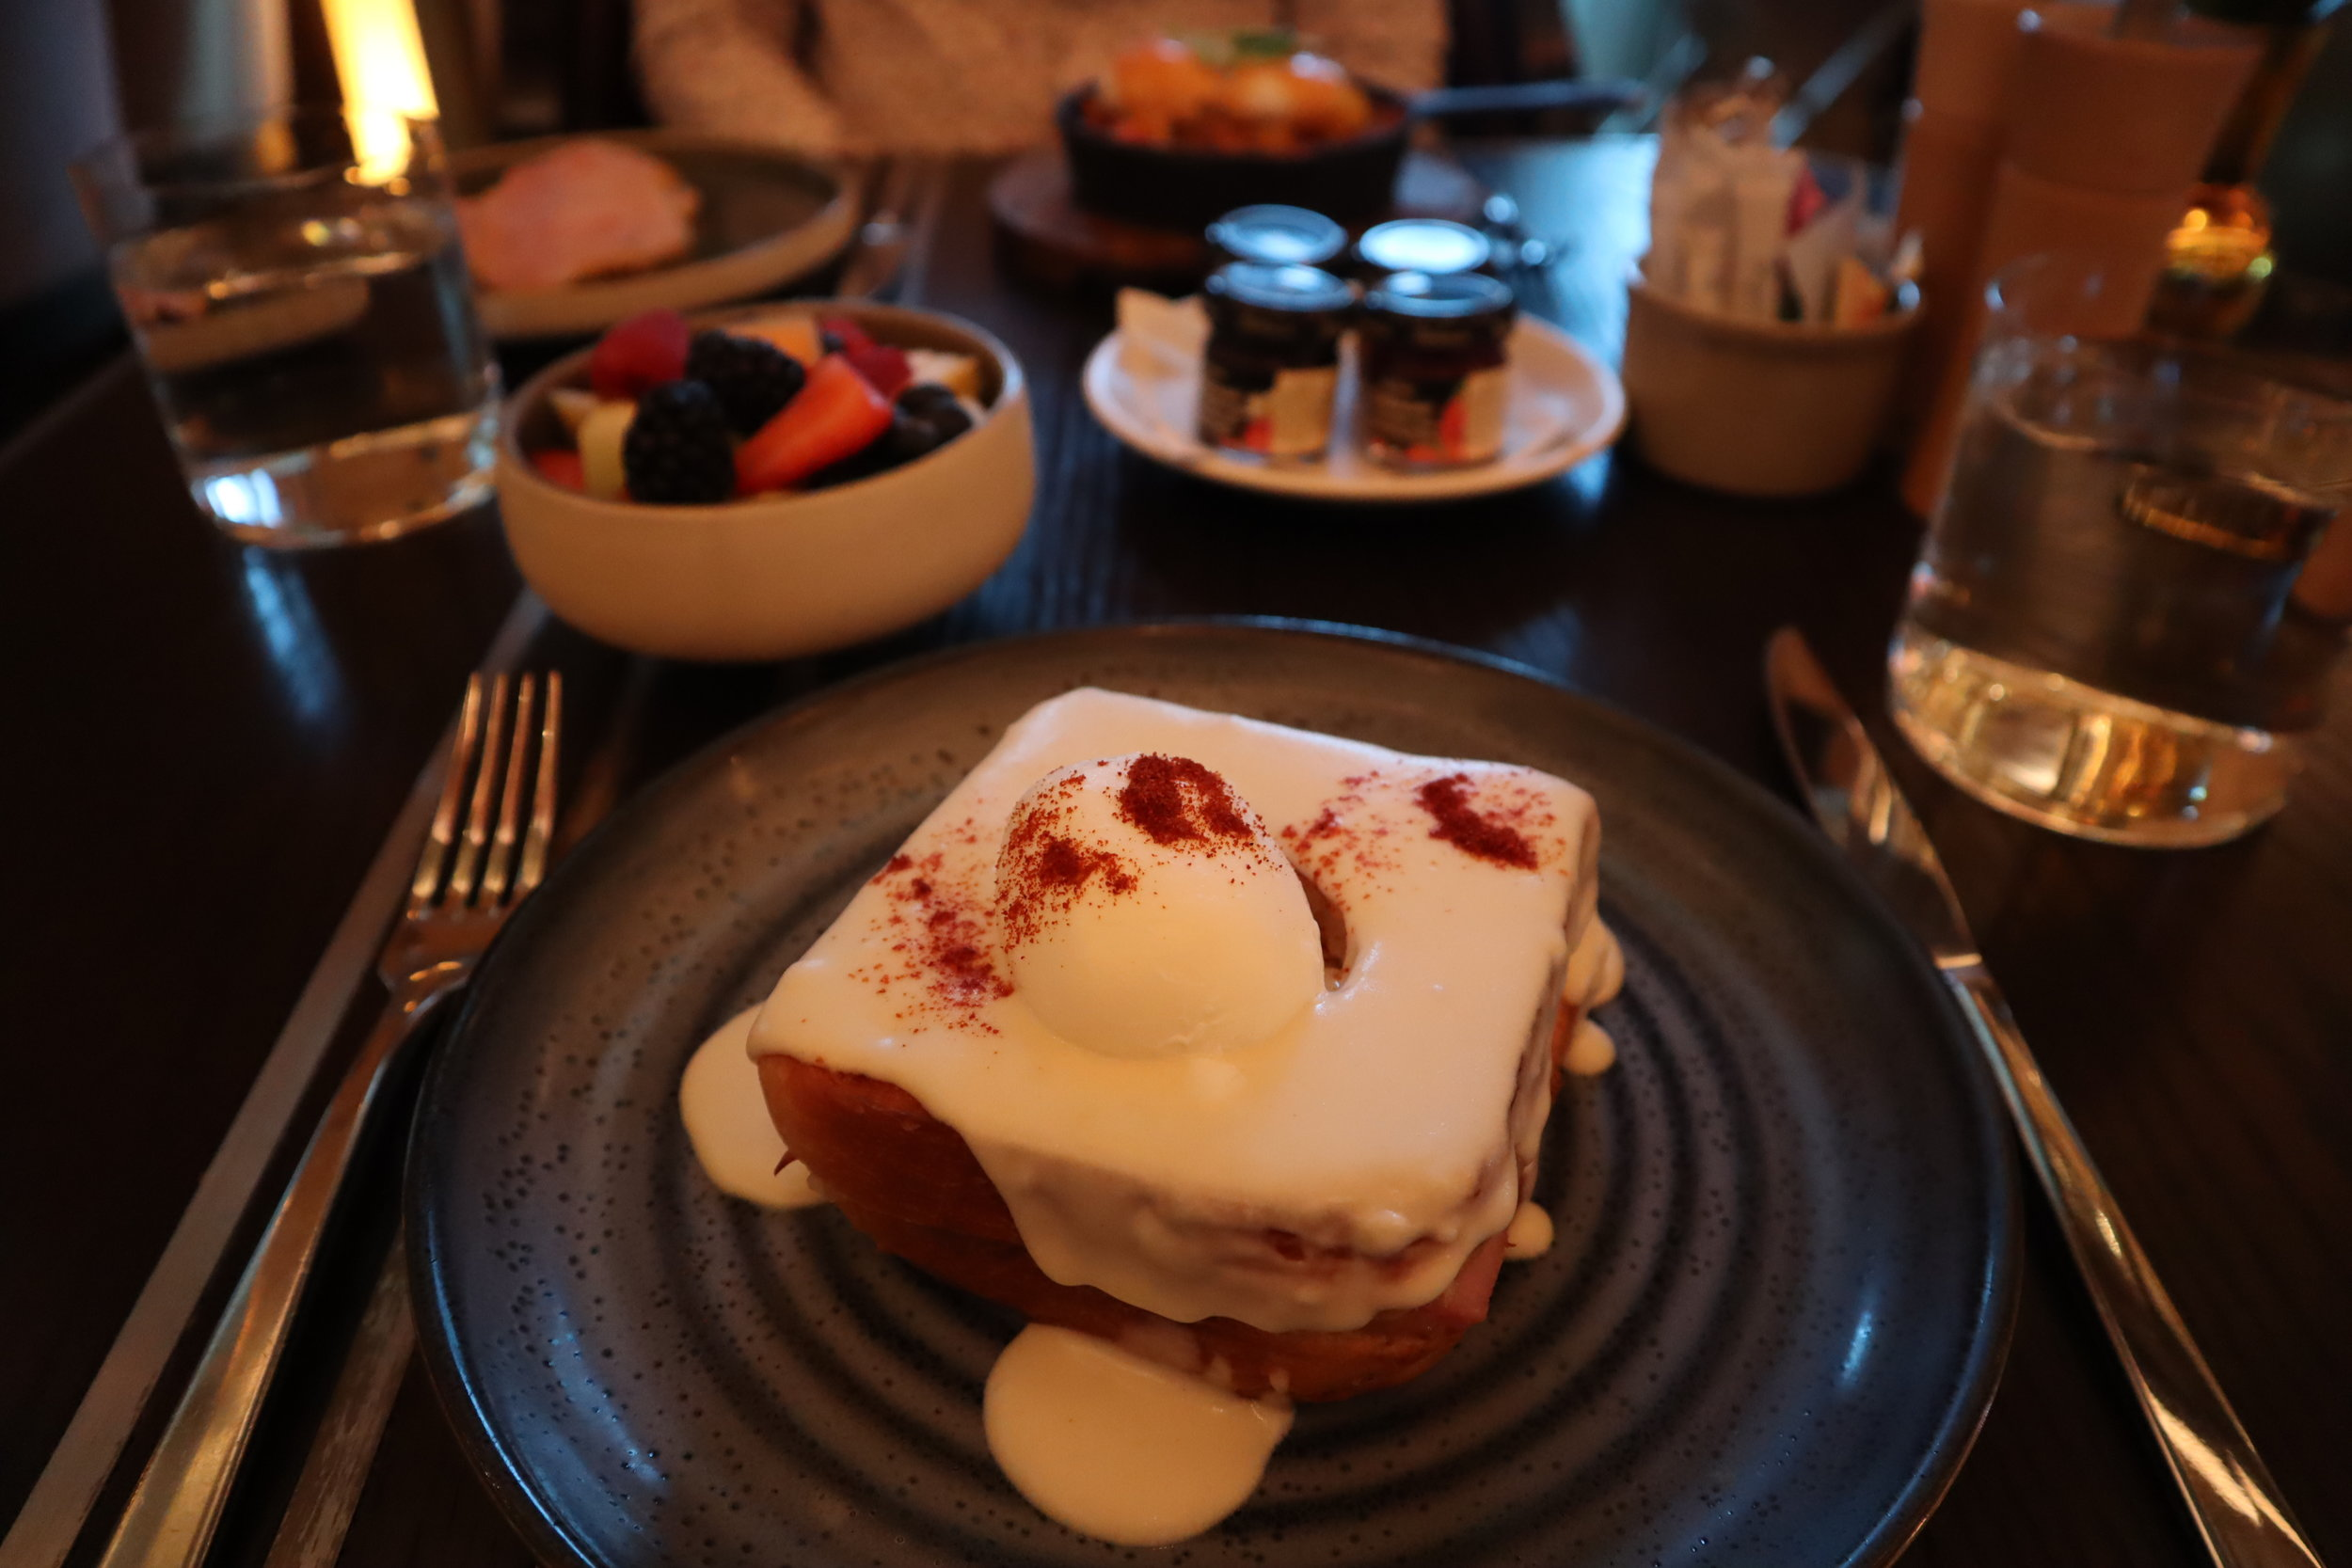 St. Regis Toronto – Croque madame with fruits and berries